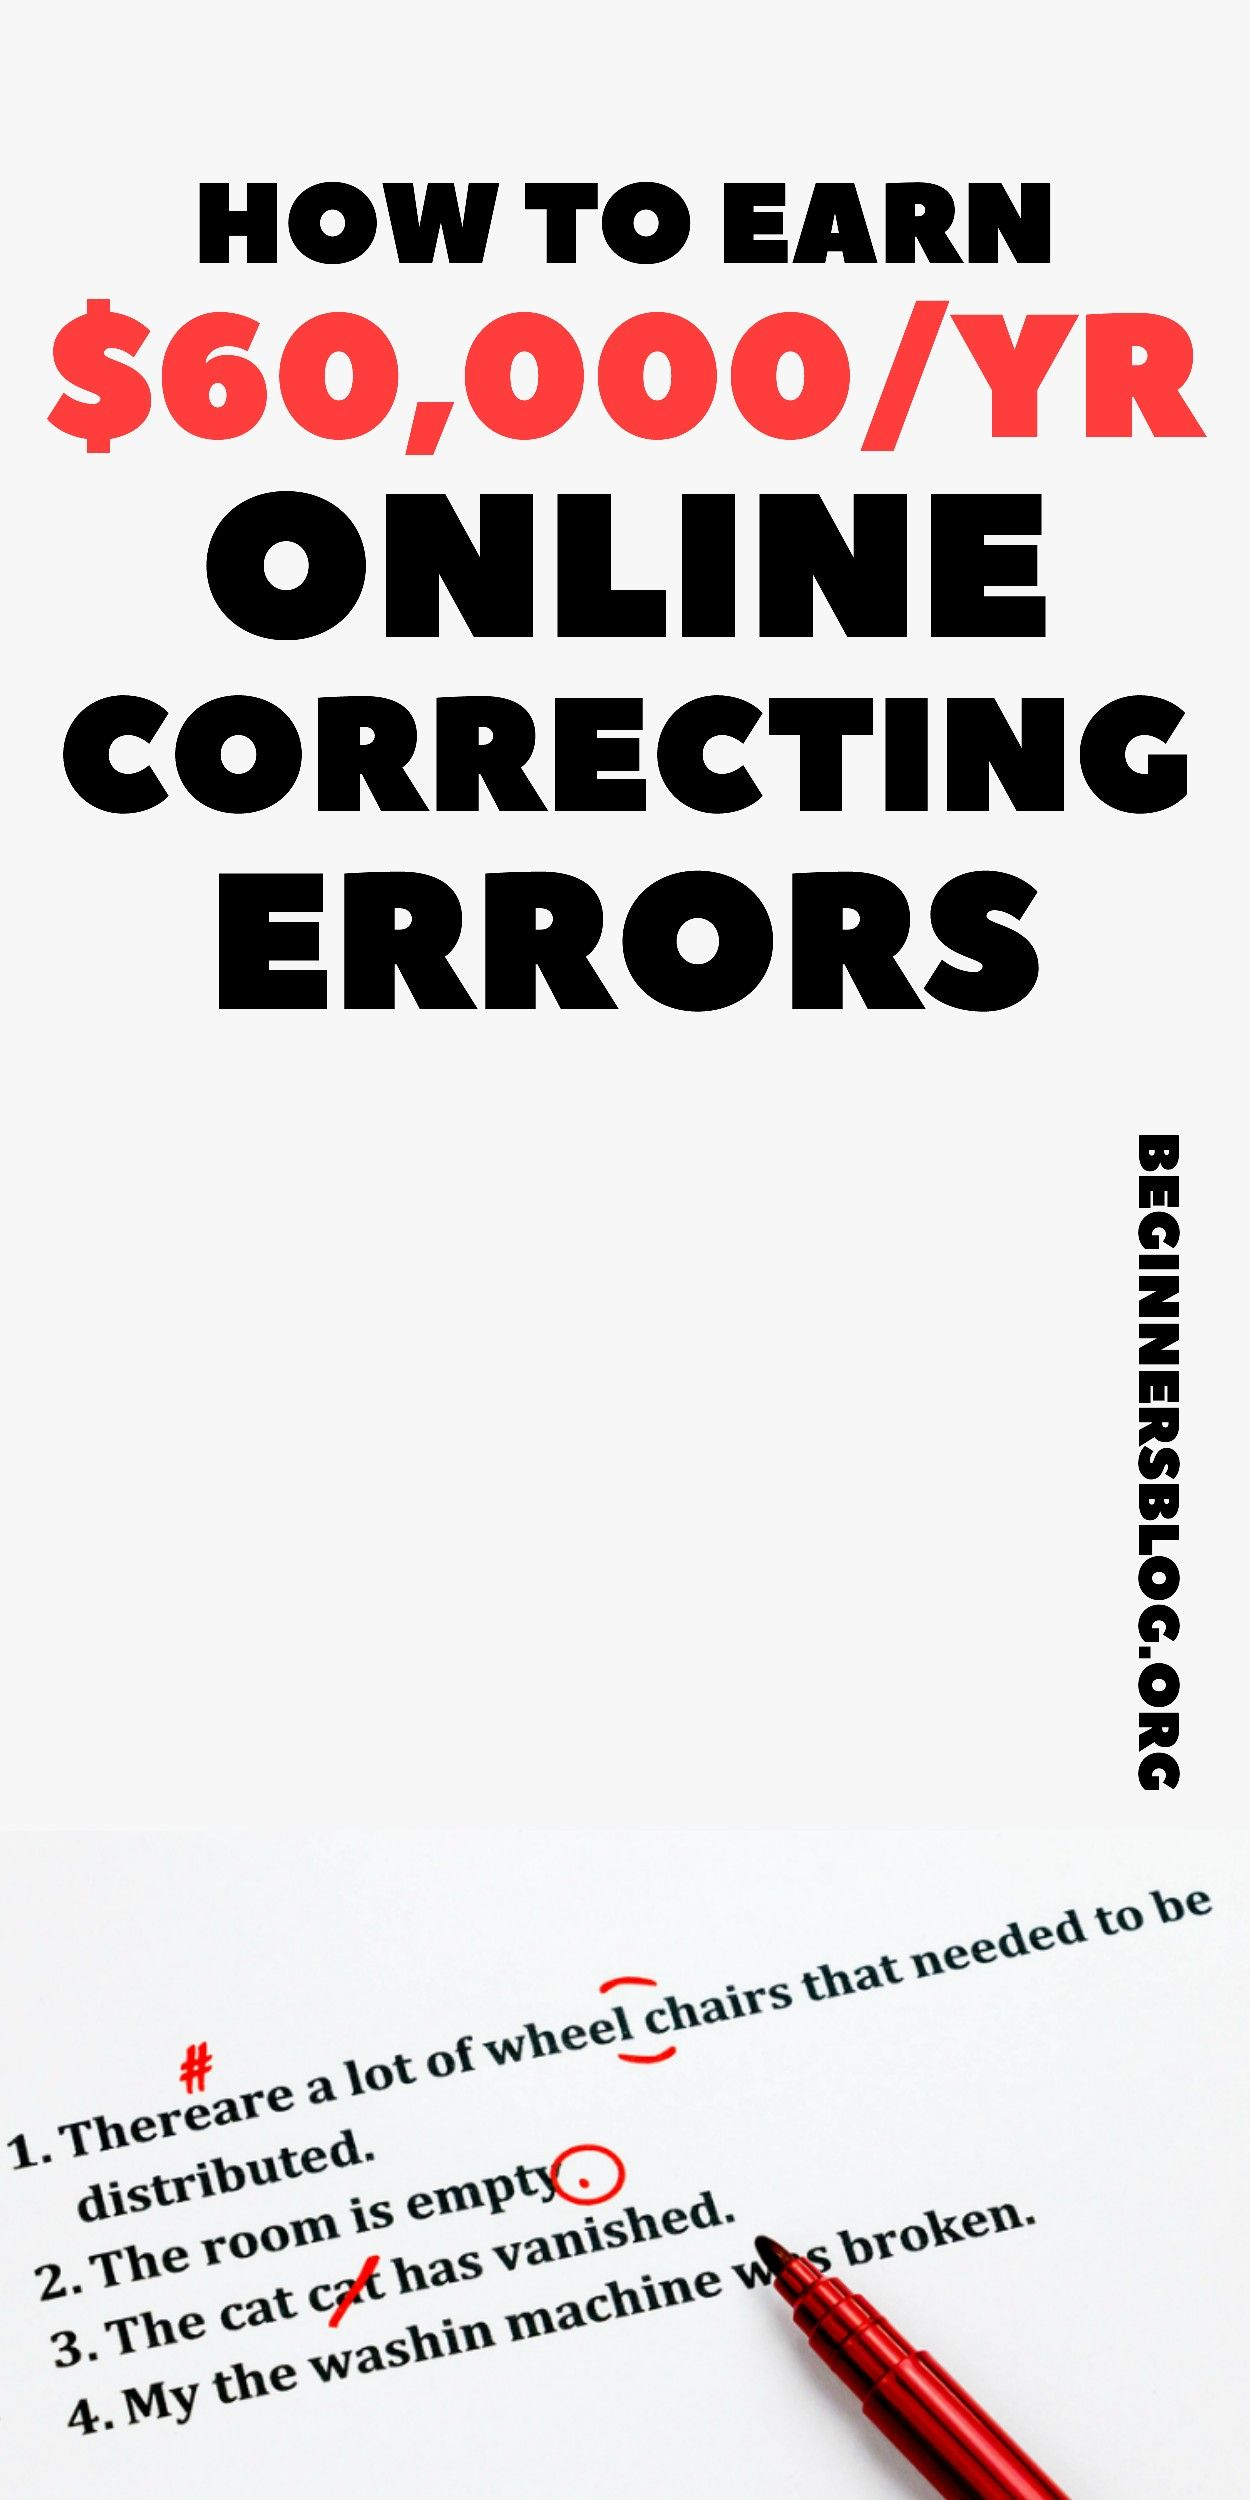 Proofreading service careers